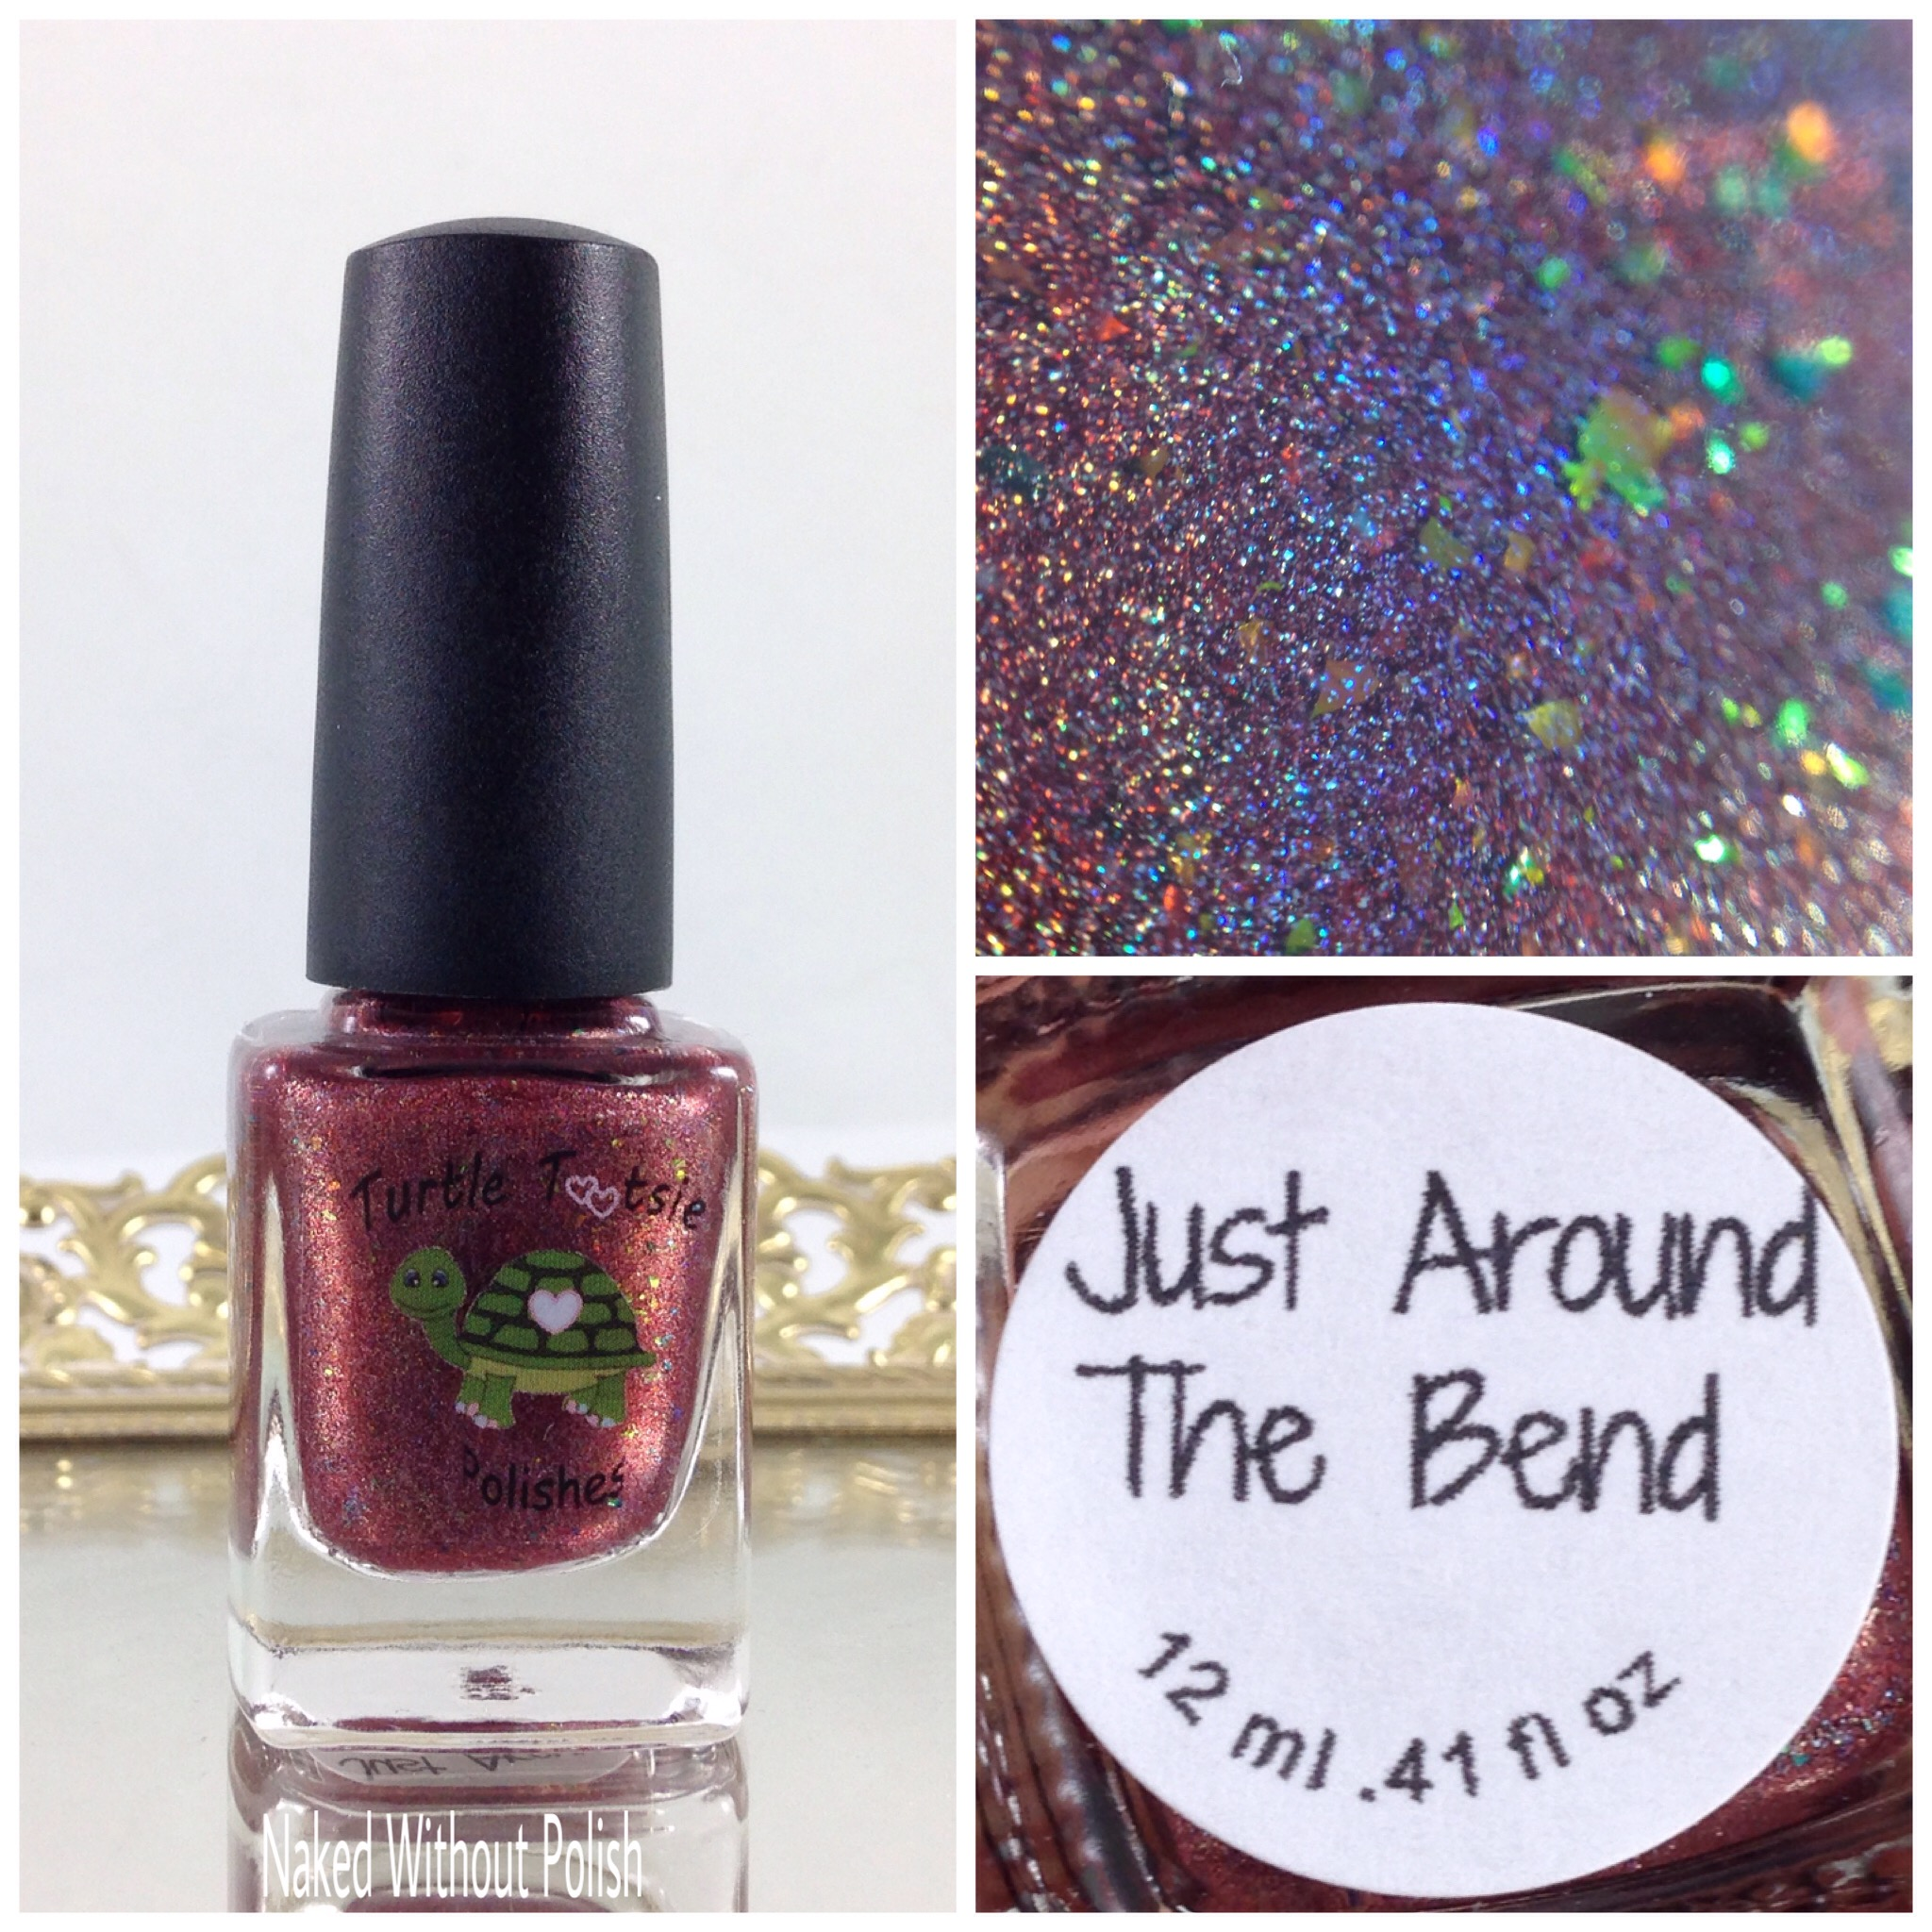 Polish-Pickup-Turtle-Tootsie-Polishes-Just-Around-the-Bend-1